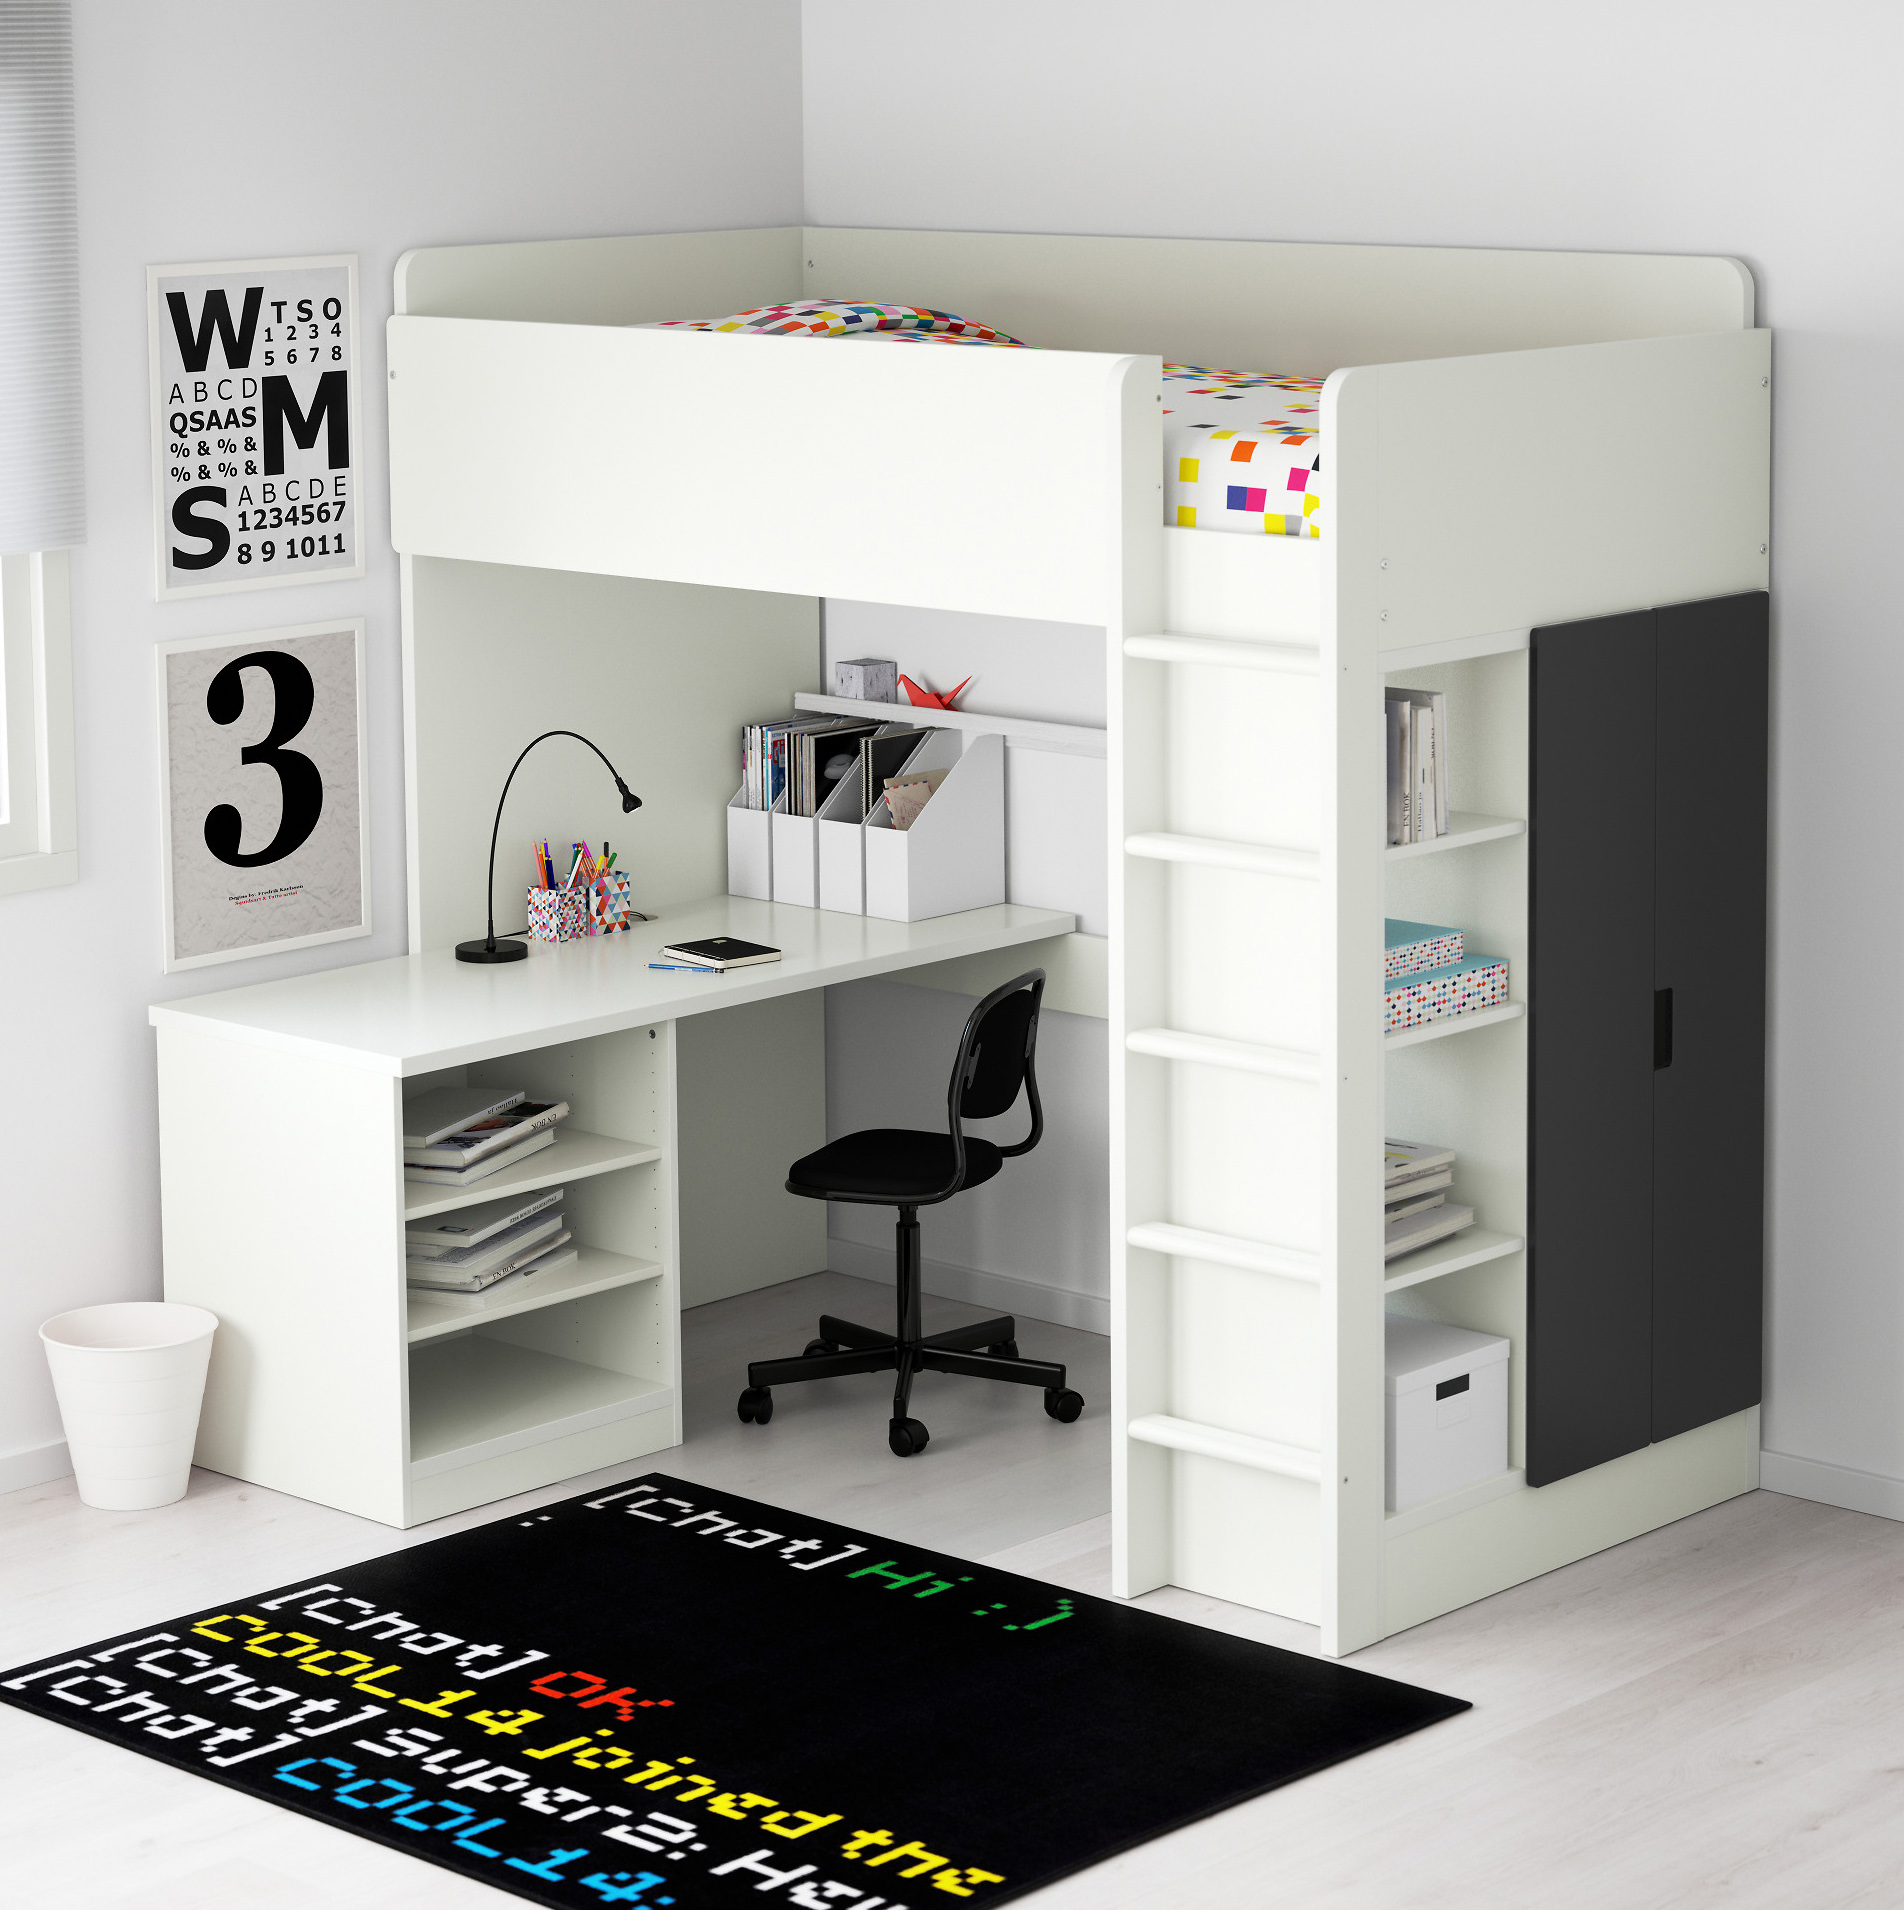 Adult Loft Bed With Desk STUVA Loft Bed Frame